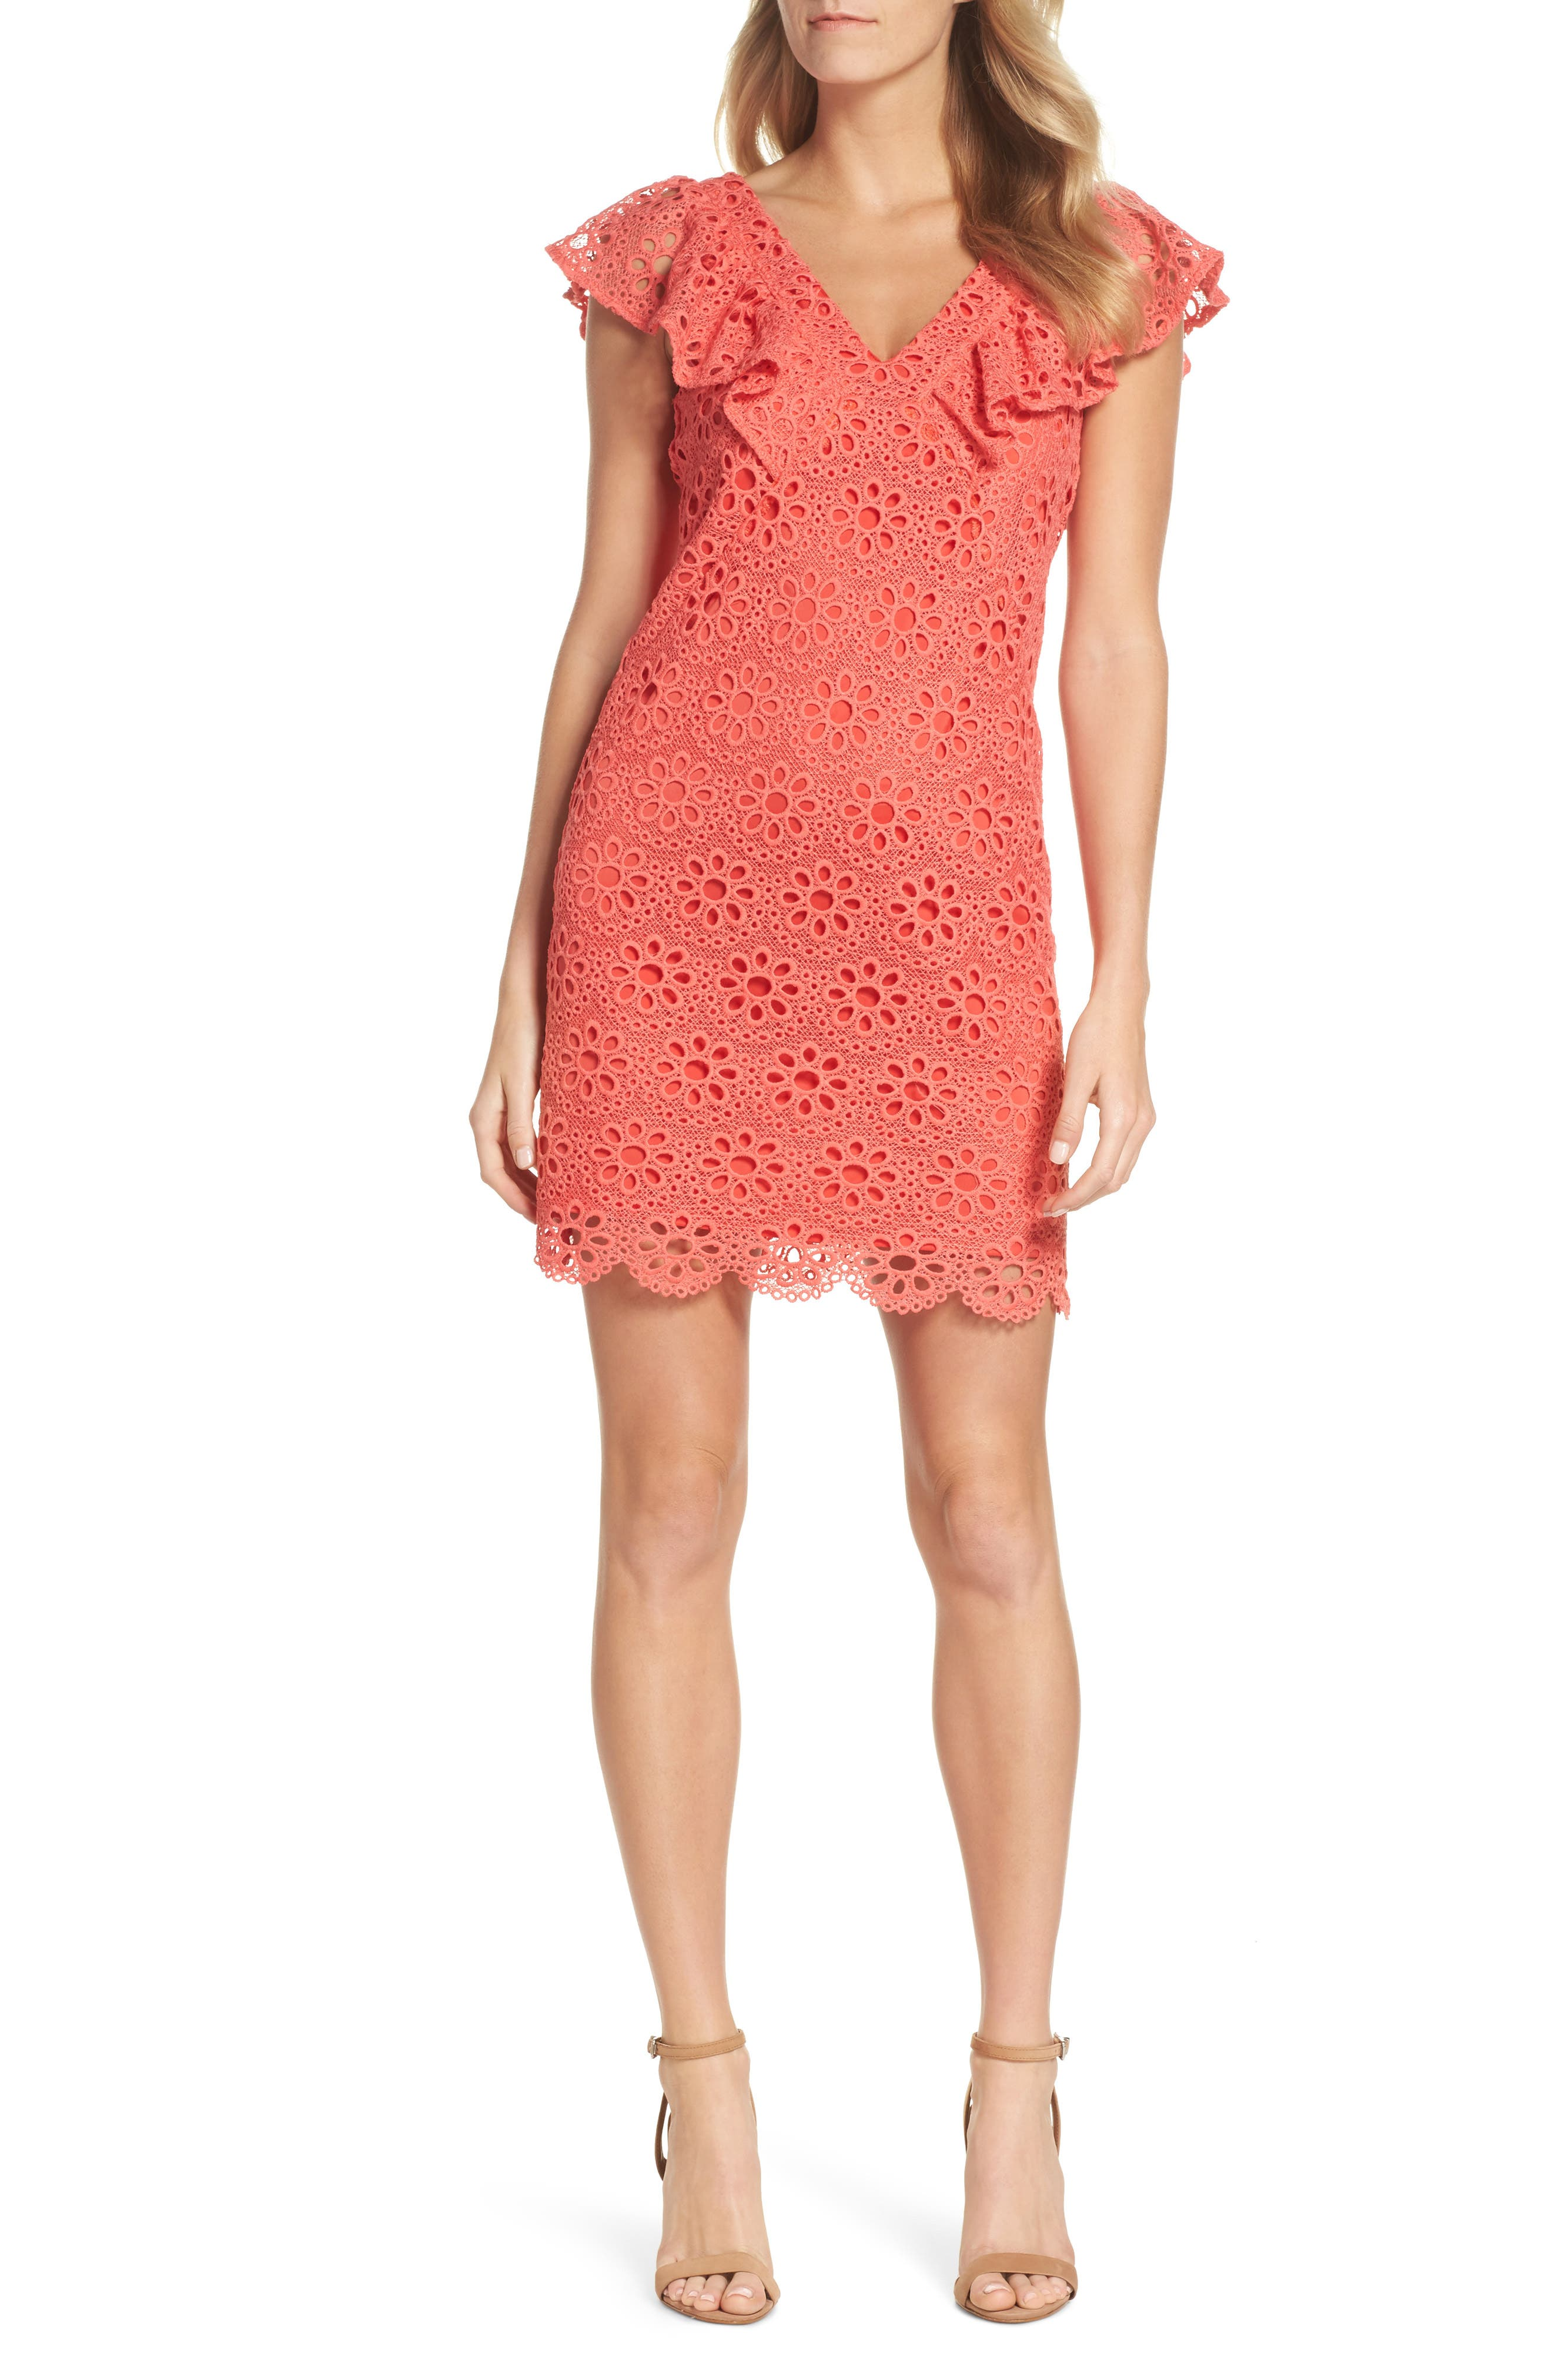 Neriah Eyelet Embroidered Dress,                         Main,                         color, CORAL LILLY